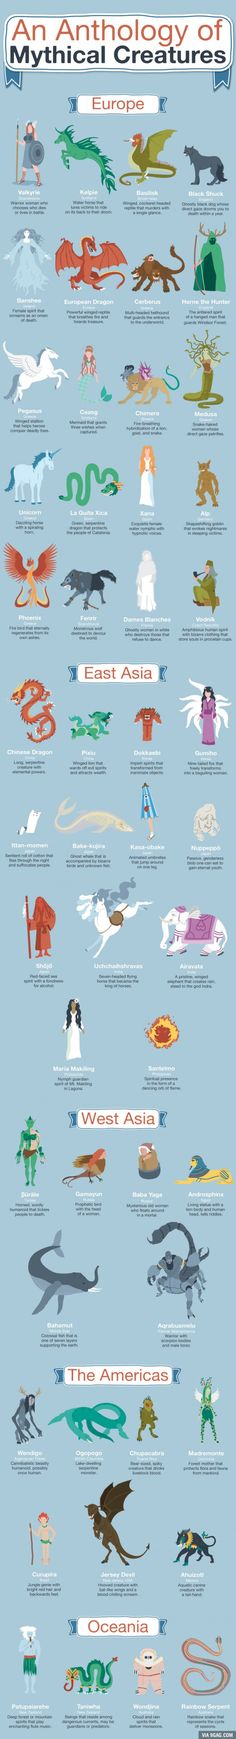 Mythology + Religion: An Anthology of Mythological Creatures Infographic Creative Writing, Writing Tips, Writing Help, Legendary Creature, Mythological Creatures, Mythological Monsters, Gods And Goddesses, Greek Mythology Gods, Japanese Mythology